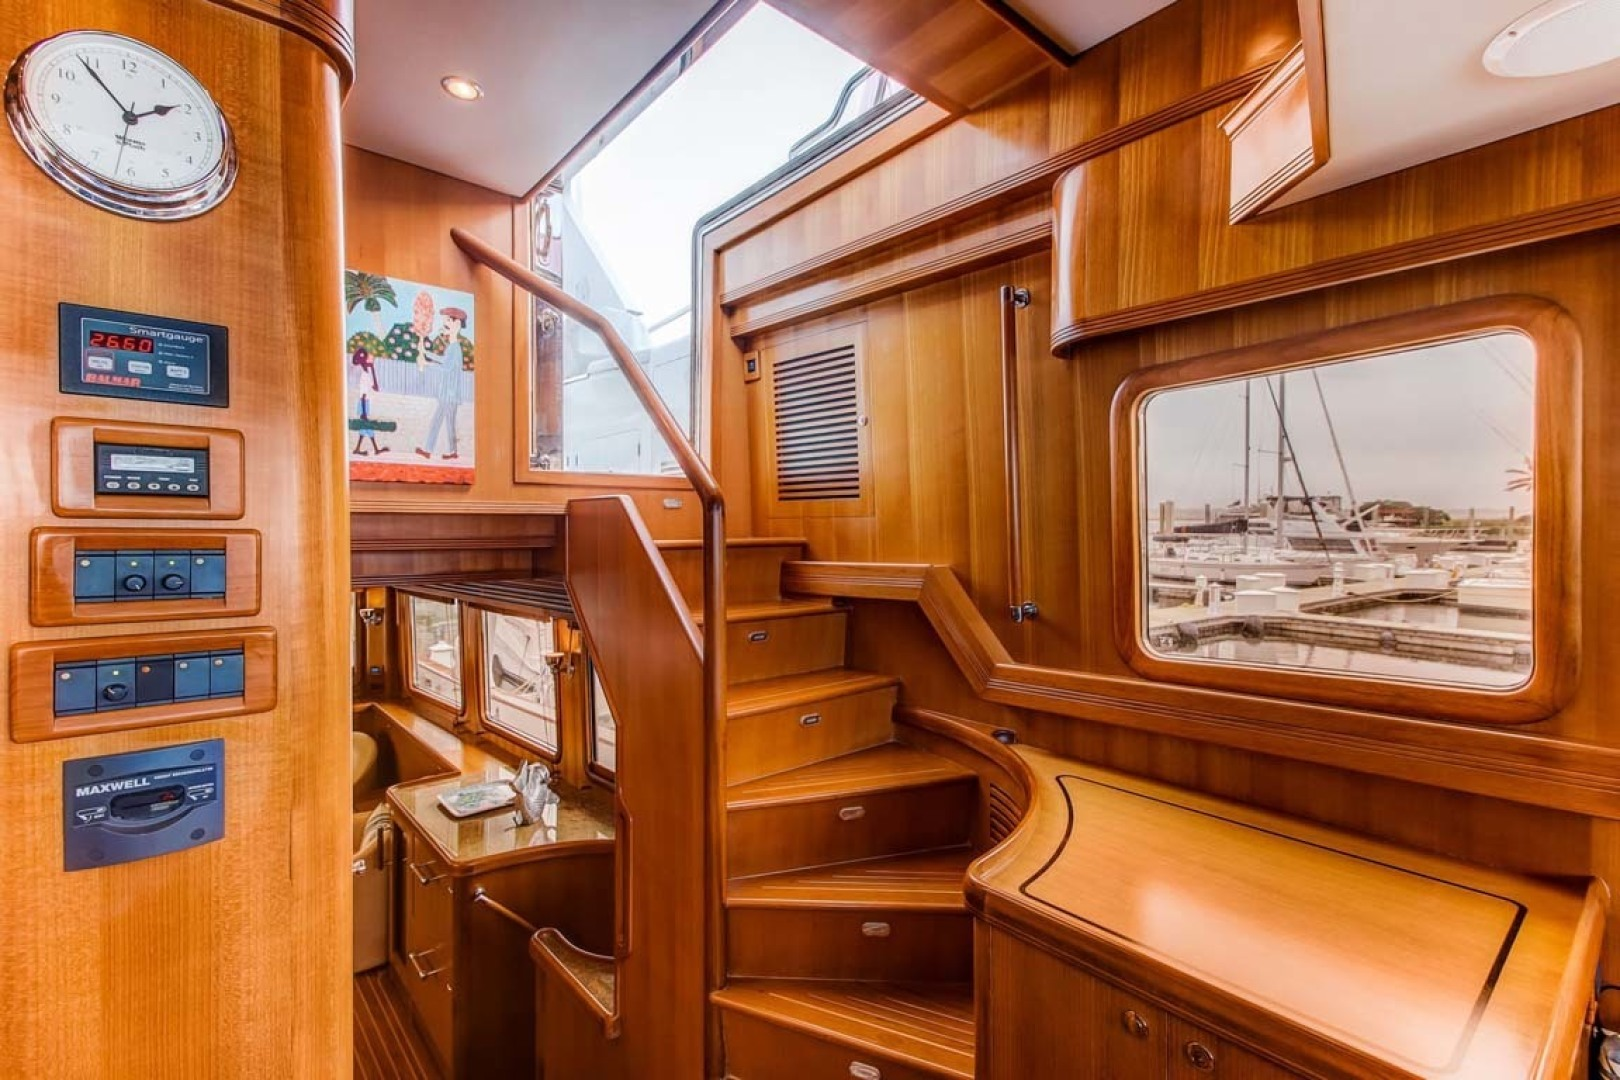 Selene-60 Ocean Trawler 2010-Gypsy Magic Jacksonville-Florida-United States-Helm station-1346726 | Thumbnail